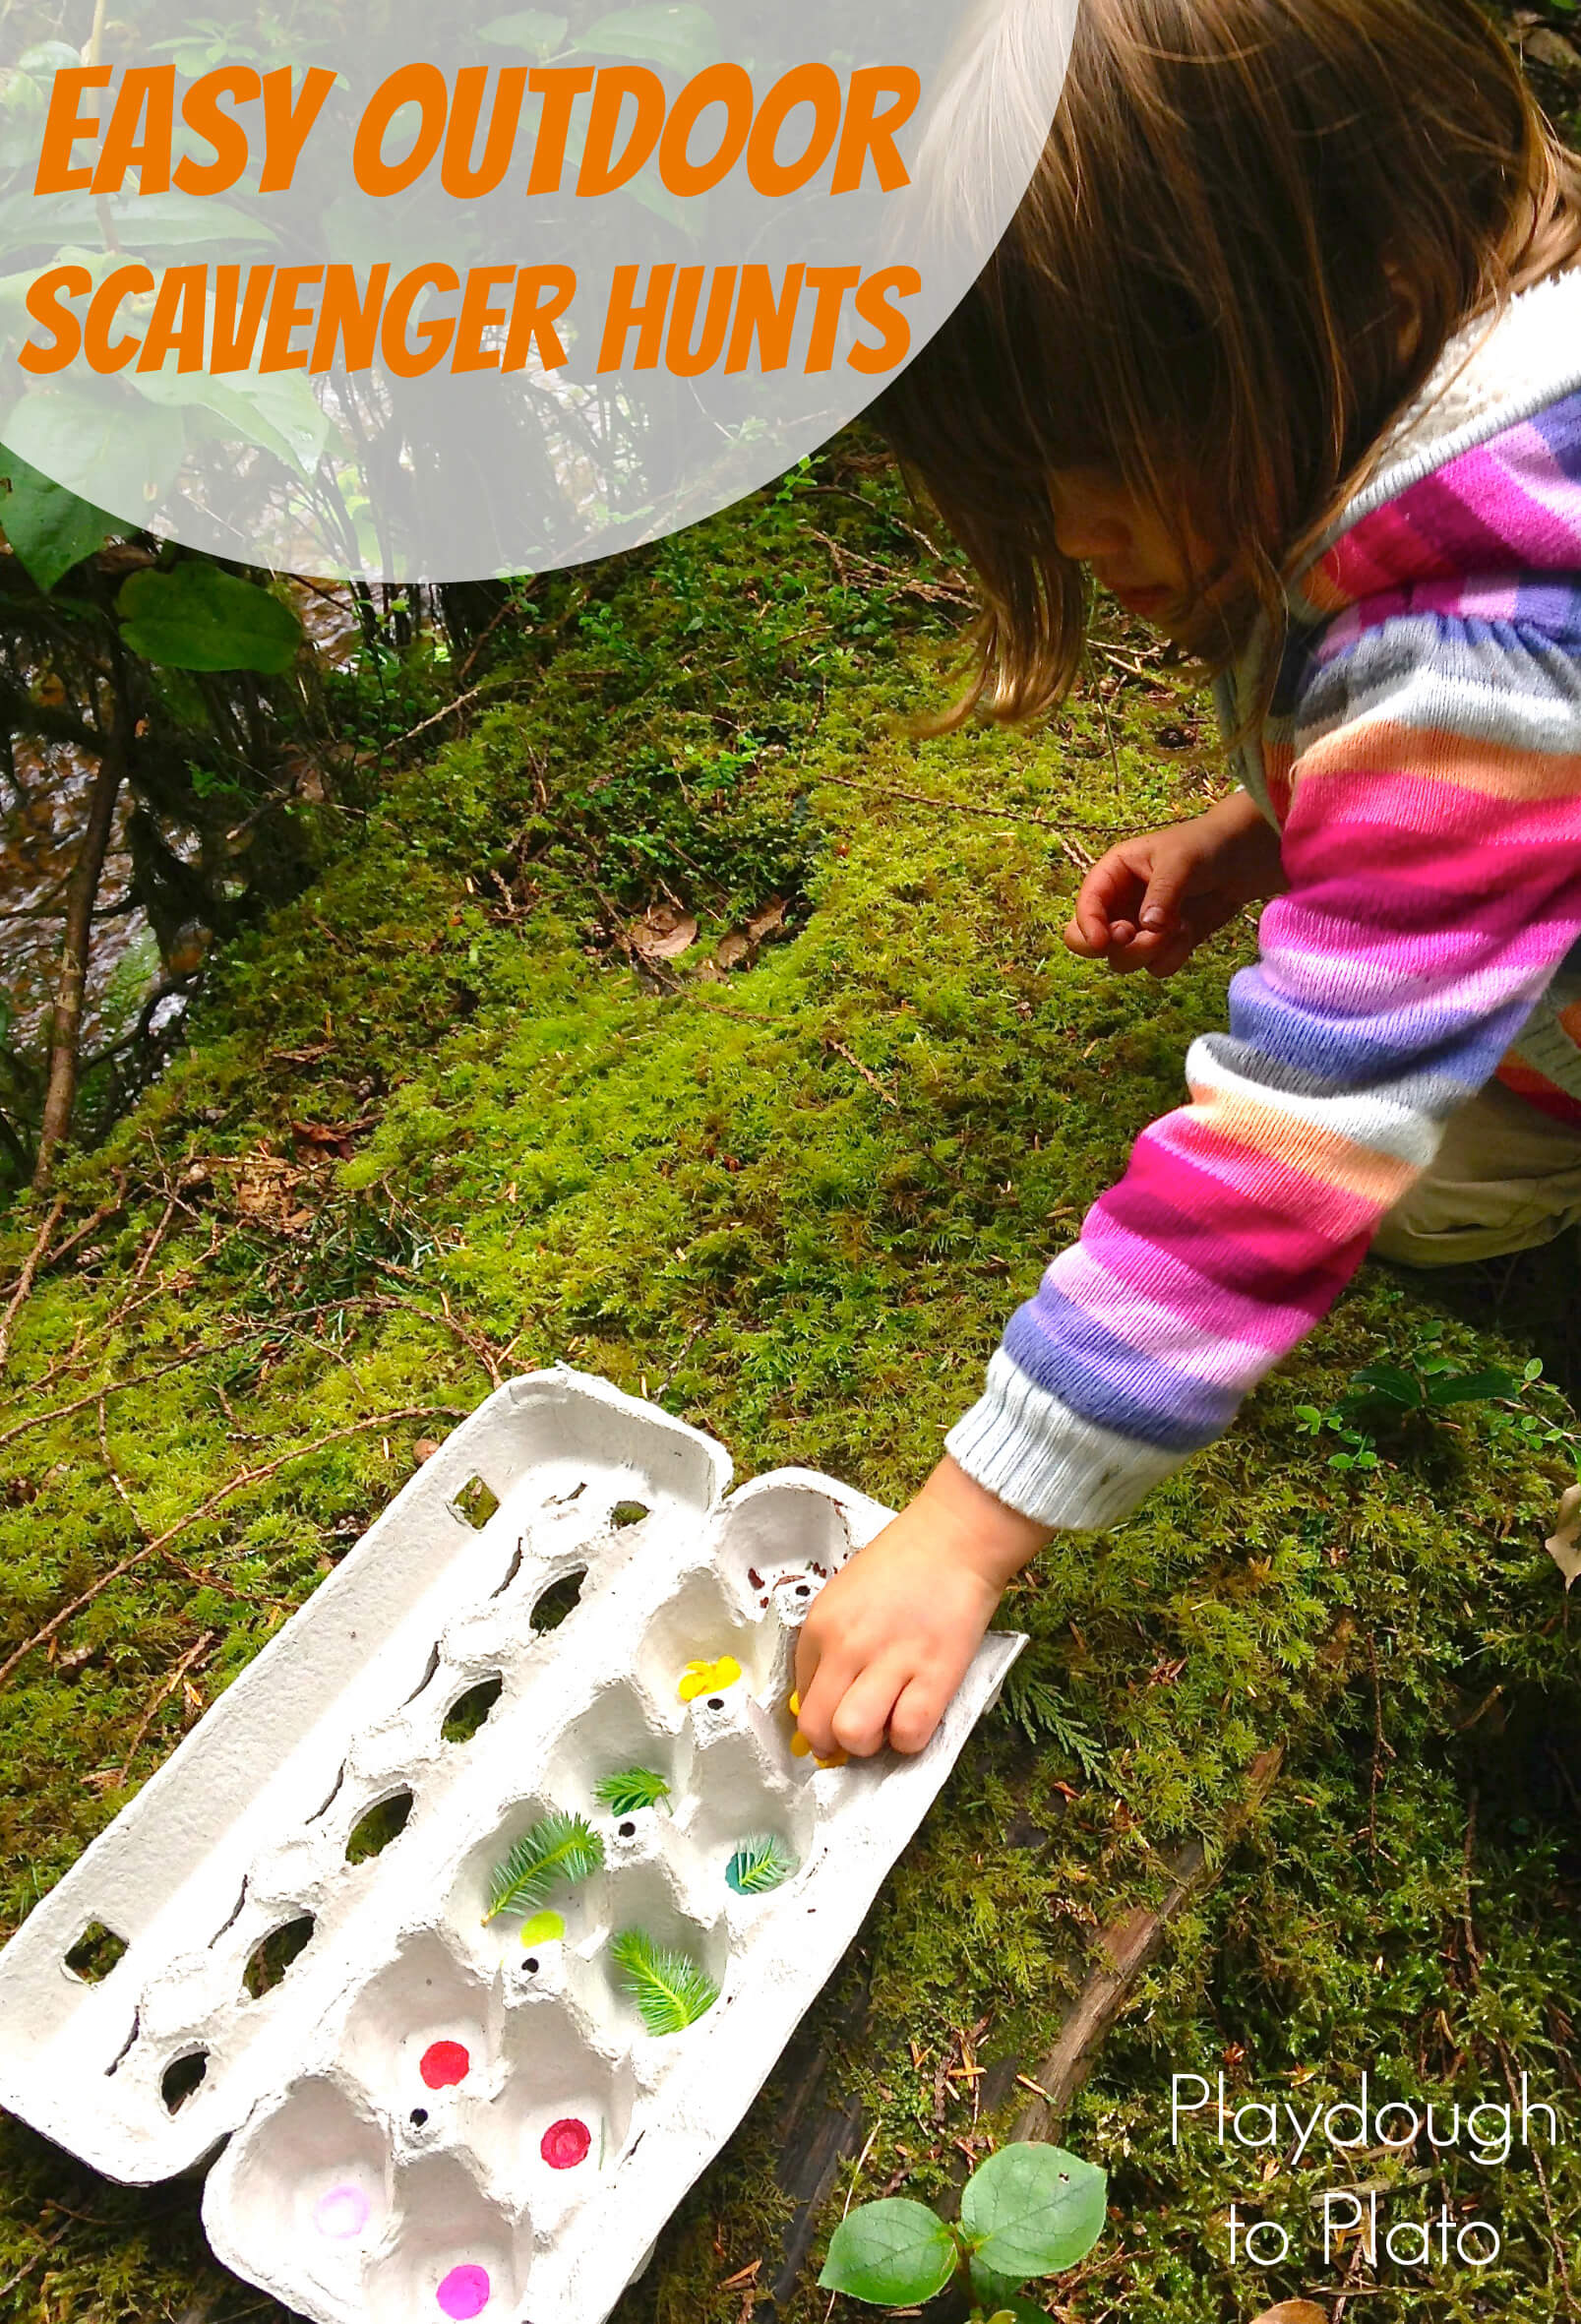 Easy Outdoor Scavenger Hunts for Kids